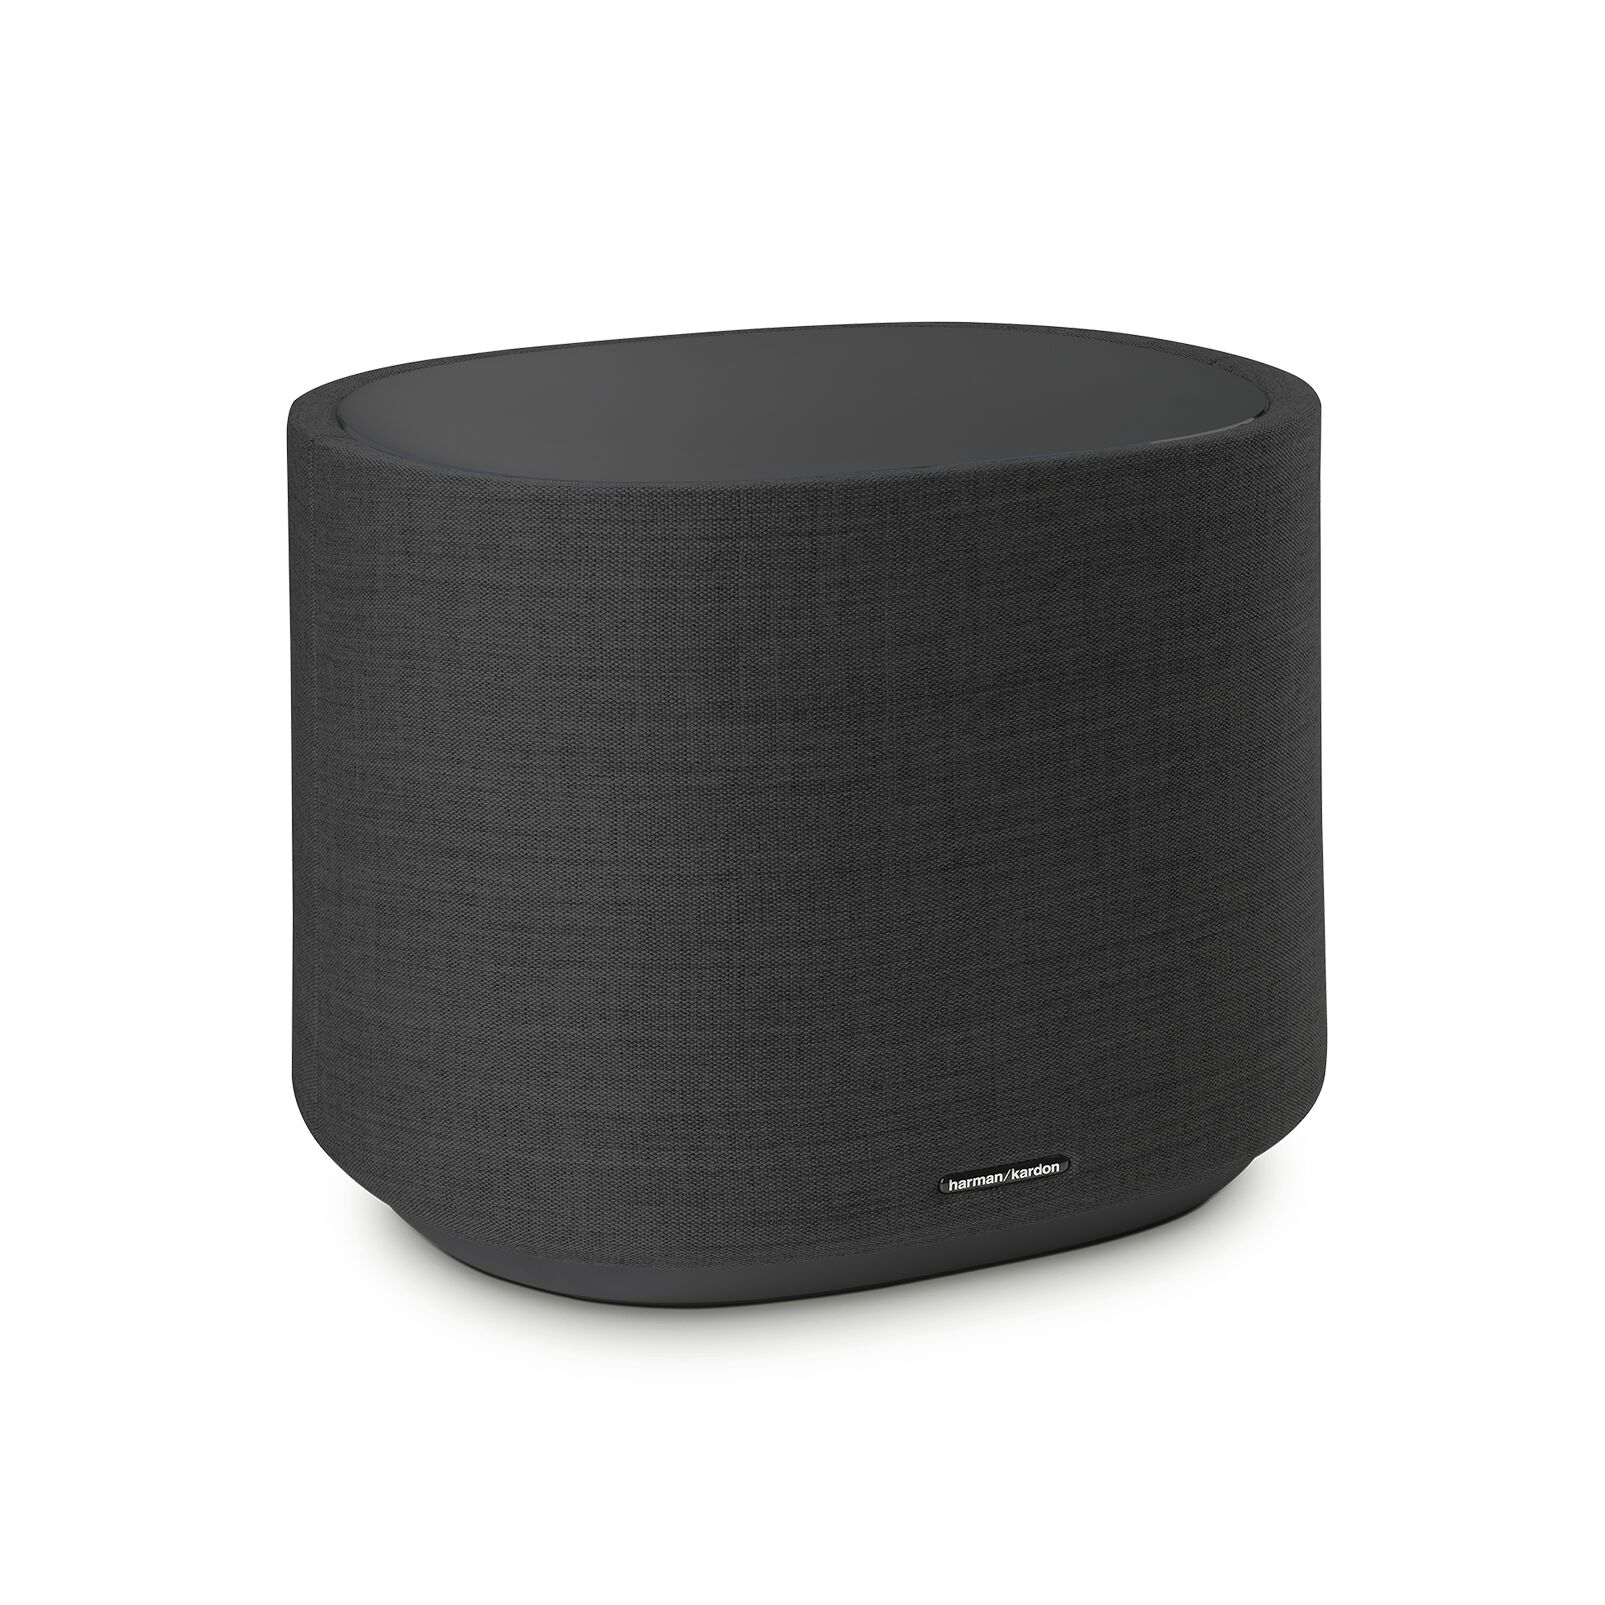 Harman Kardon Citation Sub Black